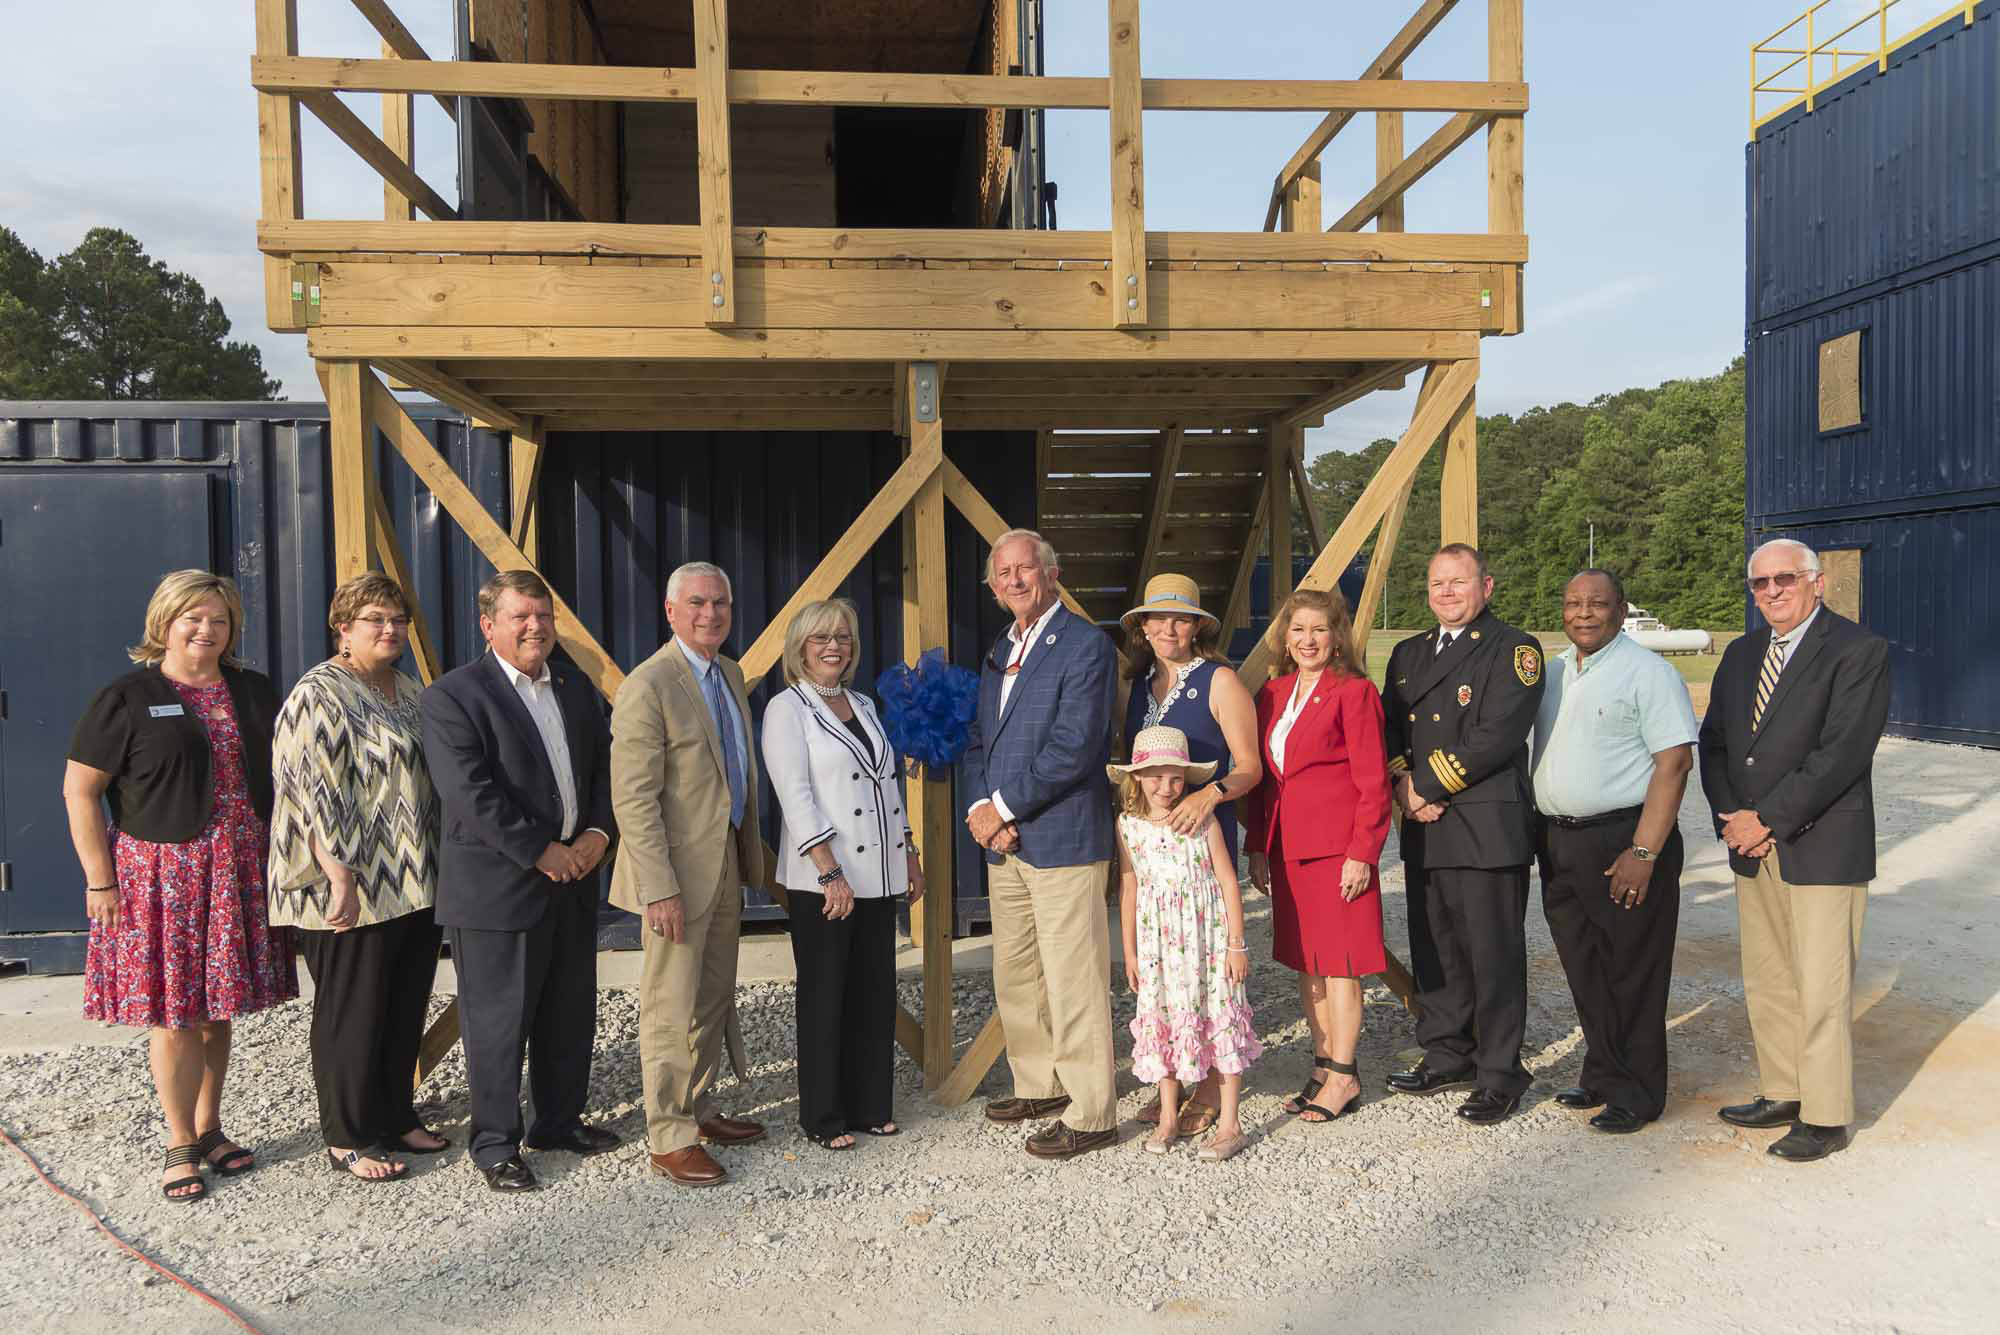 Pictured from left are Dr. Twyla Wells, executive director of the JCC Foundation; Dee Dee Daughtry, JCC vice president of instruction; N.C. Rep. Larry Strickland; Dr. David Johnson, JCC president; Lyn Austin, chair of JCC Board of Trustees; Donnie Lassiter, Sara Massey and daughter, Emma; N.C. Rep. Donna White; Jeremey Daughtry, division chief of Smithfield Fire Department; Haywood Watson, member JCC Board of Trustees; and John Parrish, member JCC Foundation Board of Directors.